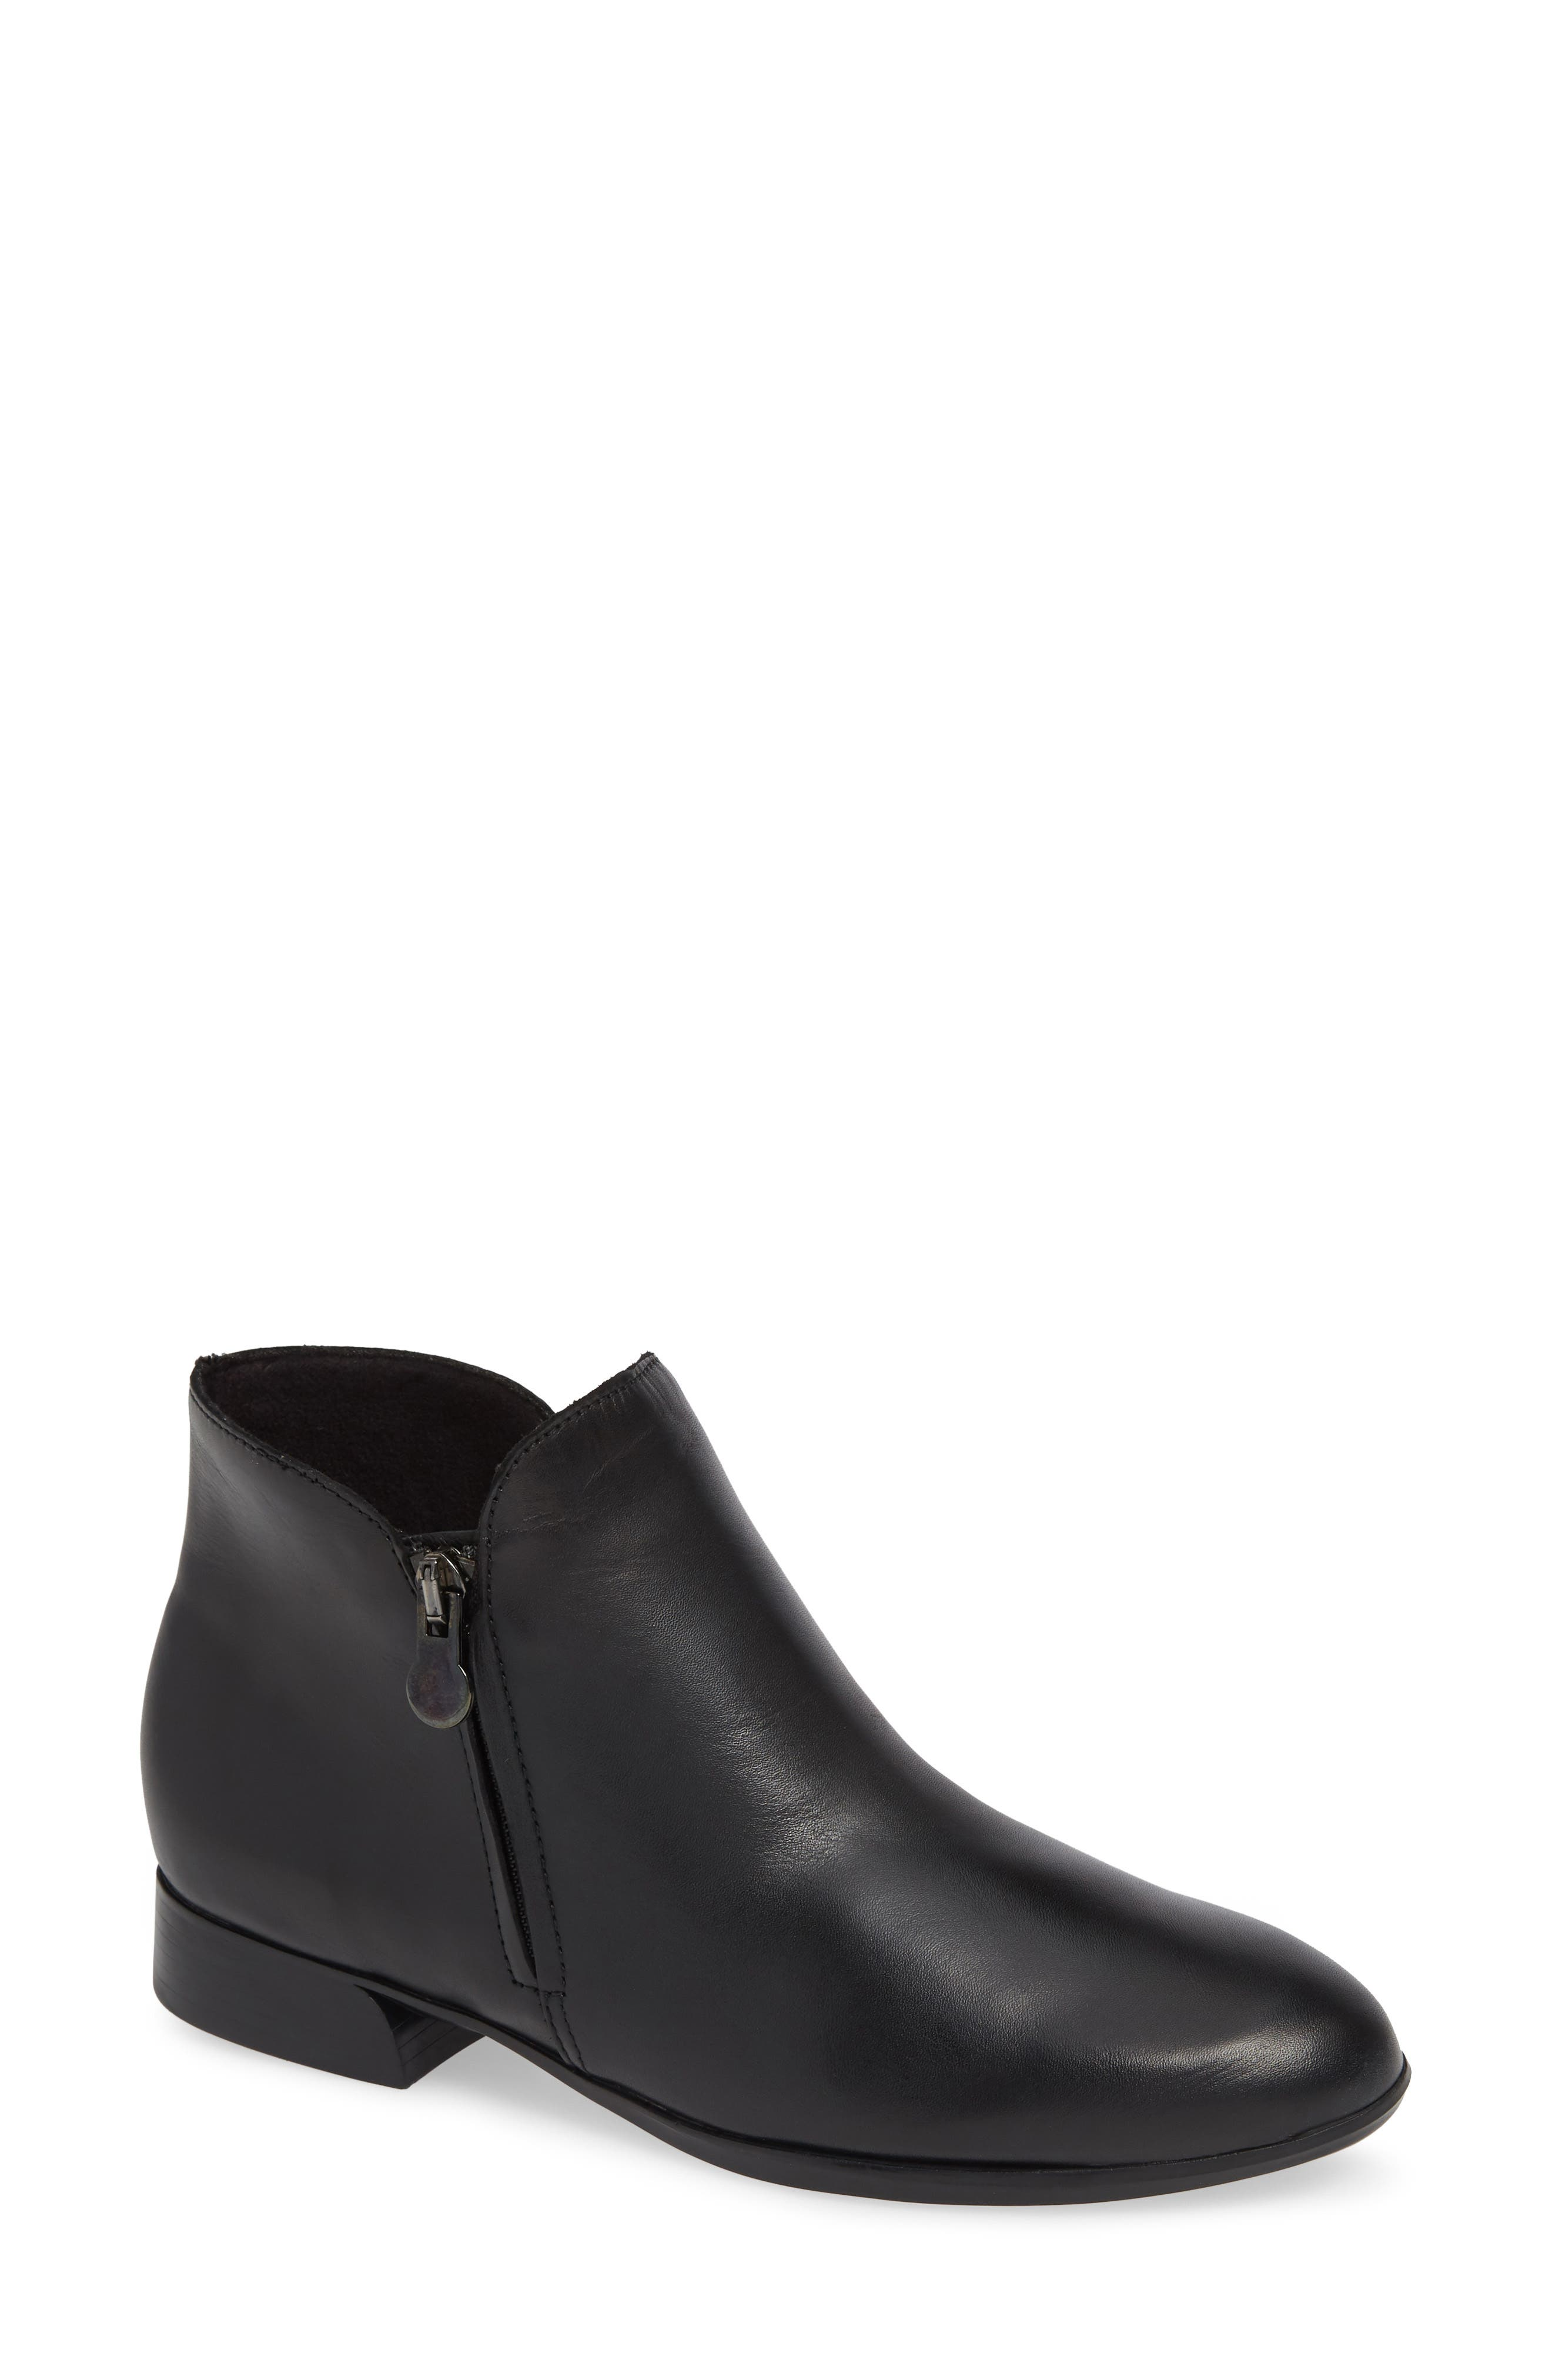 MUNRO, Averee Bootie, Main thumbnail 1, color, BLACK LEATHER